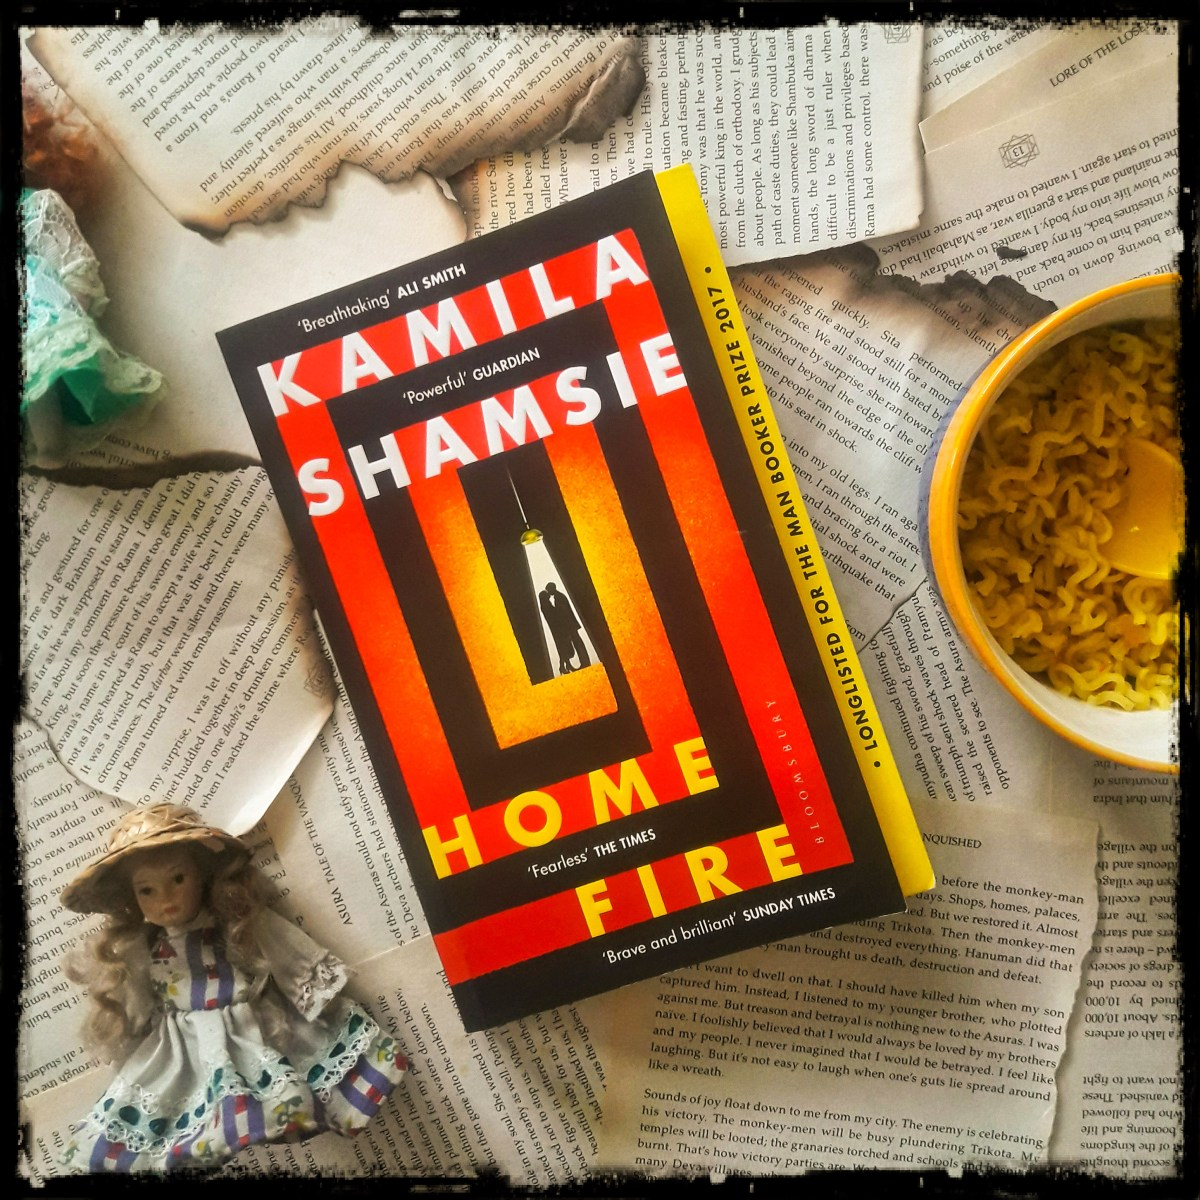 Home Fire By Kamila Shamsie- A Man Booker Longlist